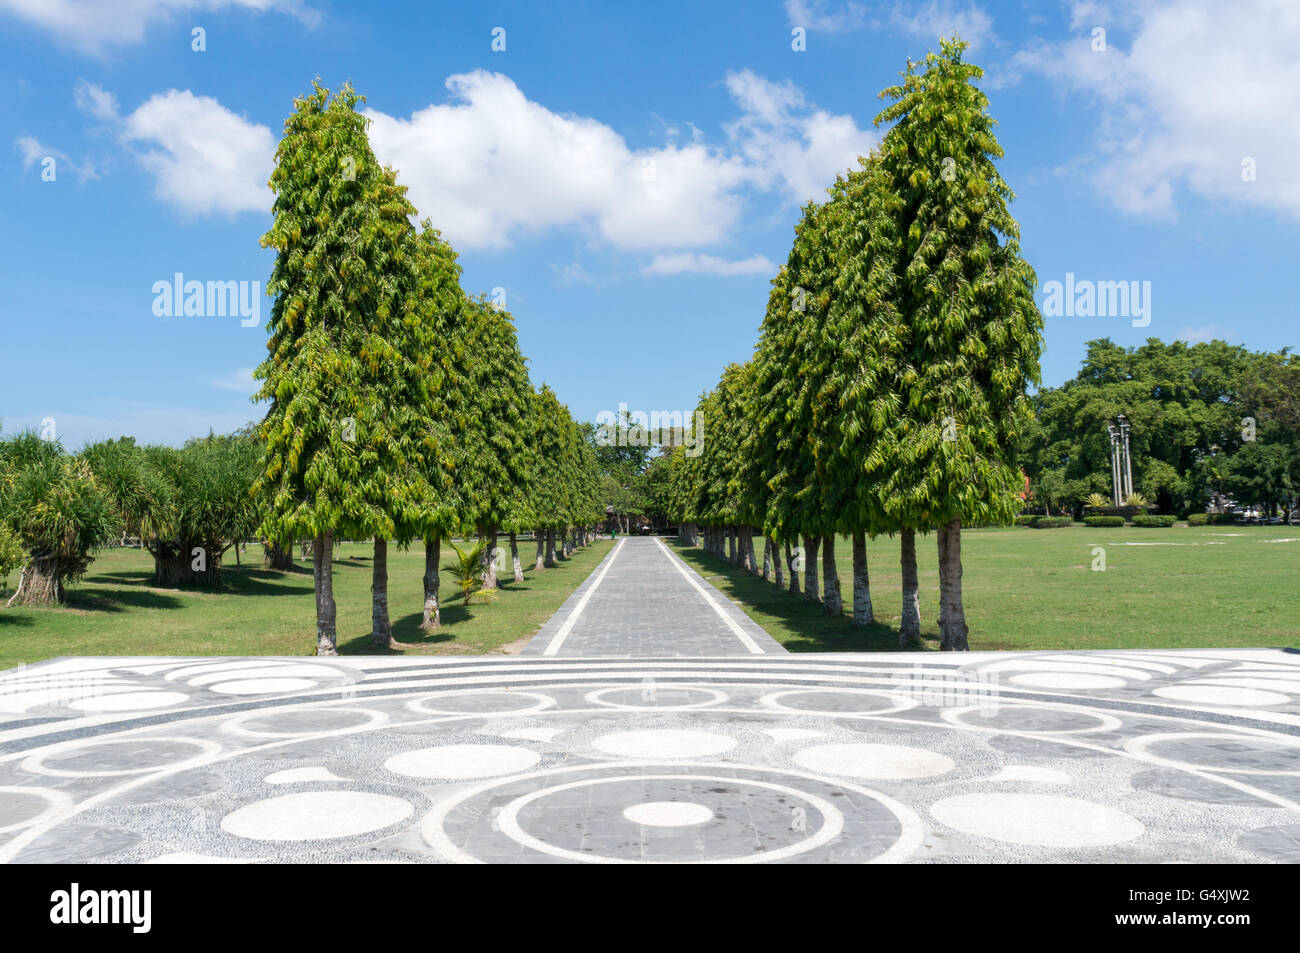 Avenue with tall trees leading to Bajra Sandhi Monument in Denpasar, Bali - Stock Image